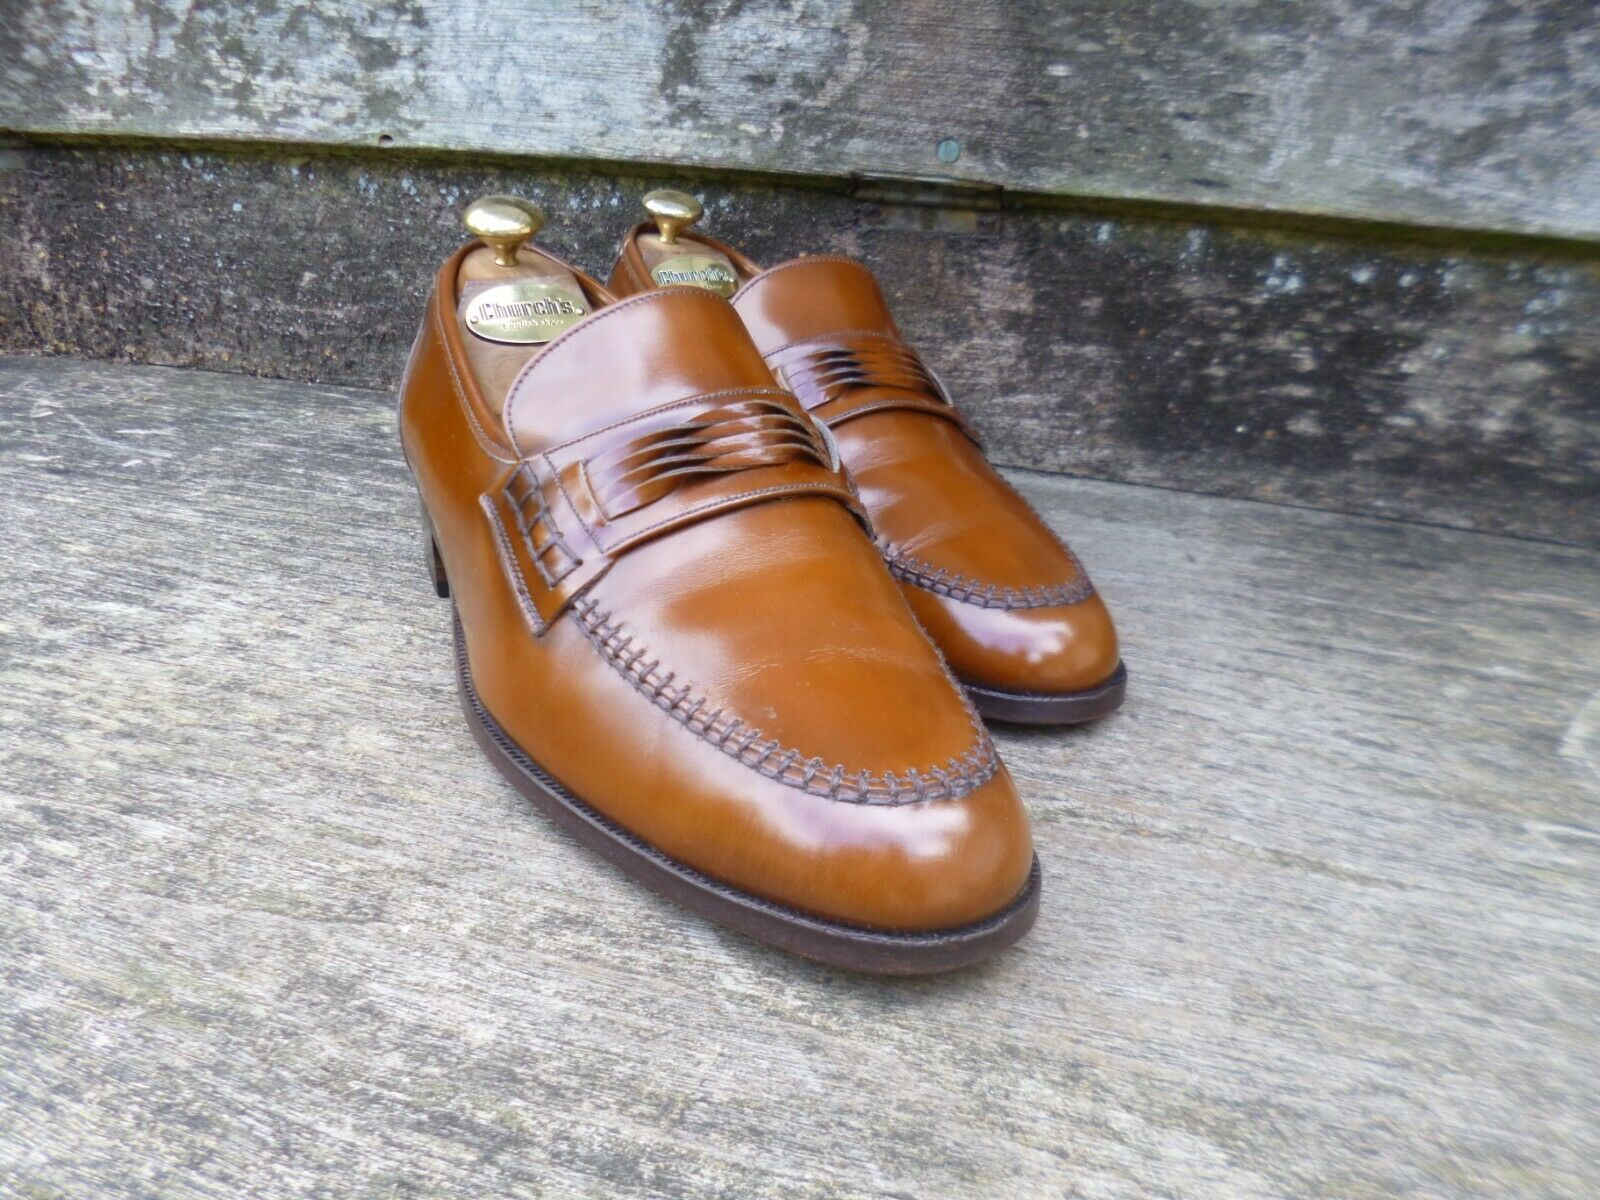 CHEANEY   CHURCH LOAFERS – braun   TAN  – UK 8 – WALTON - EXCELLENT CONDITION  | Erlesene Materialien